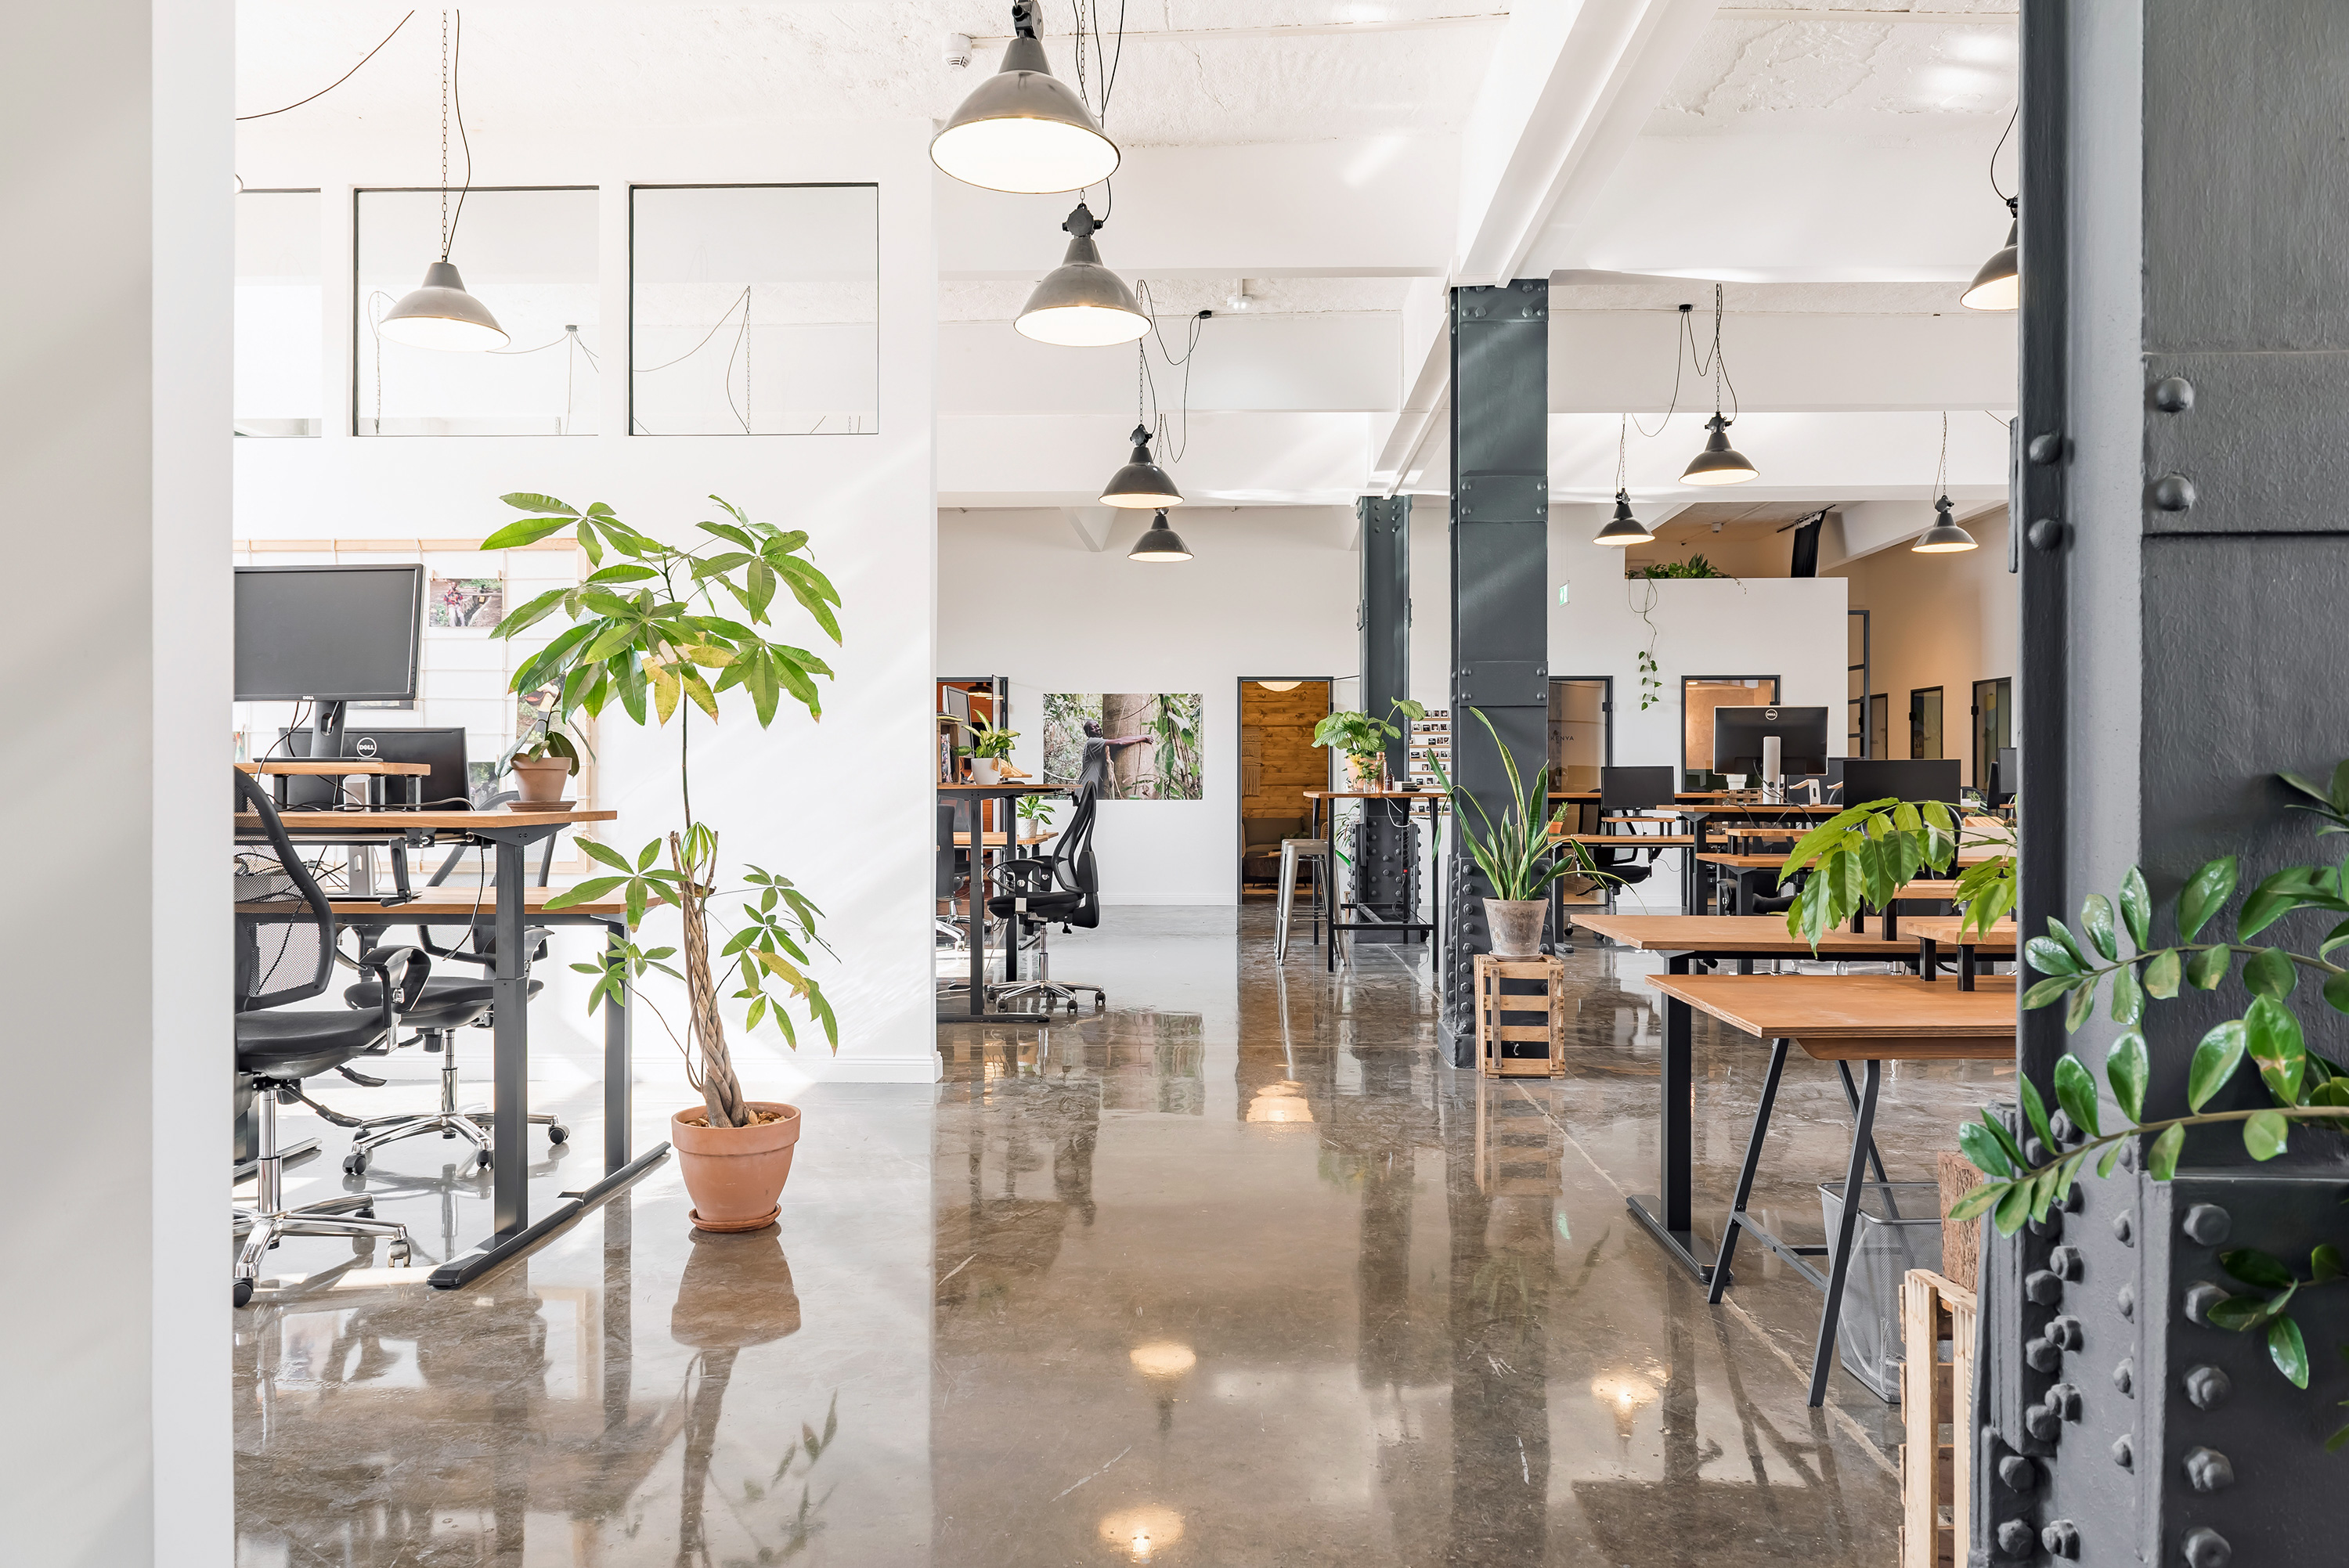 The bright, spacious Ecosia office. Industrial style with a lot of natural light and plants